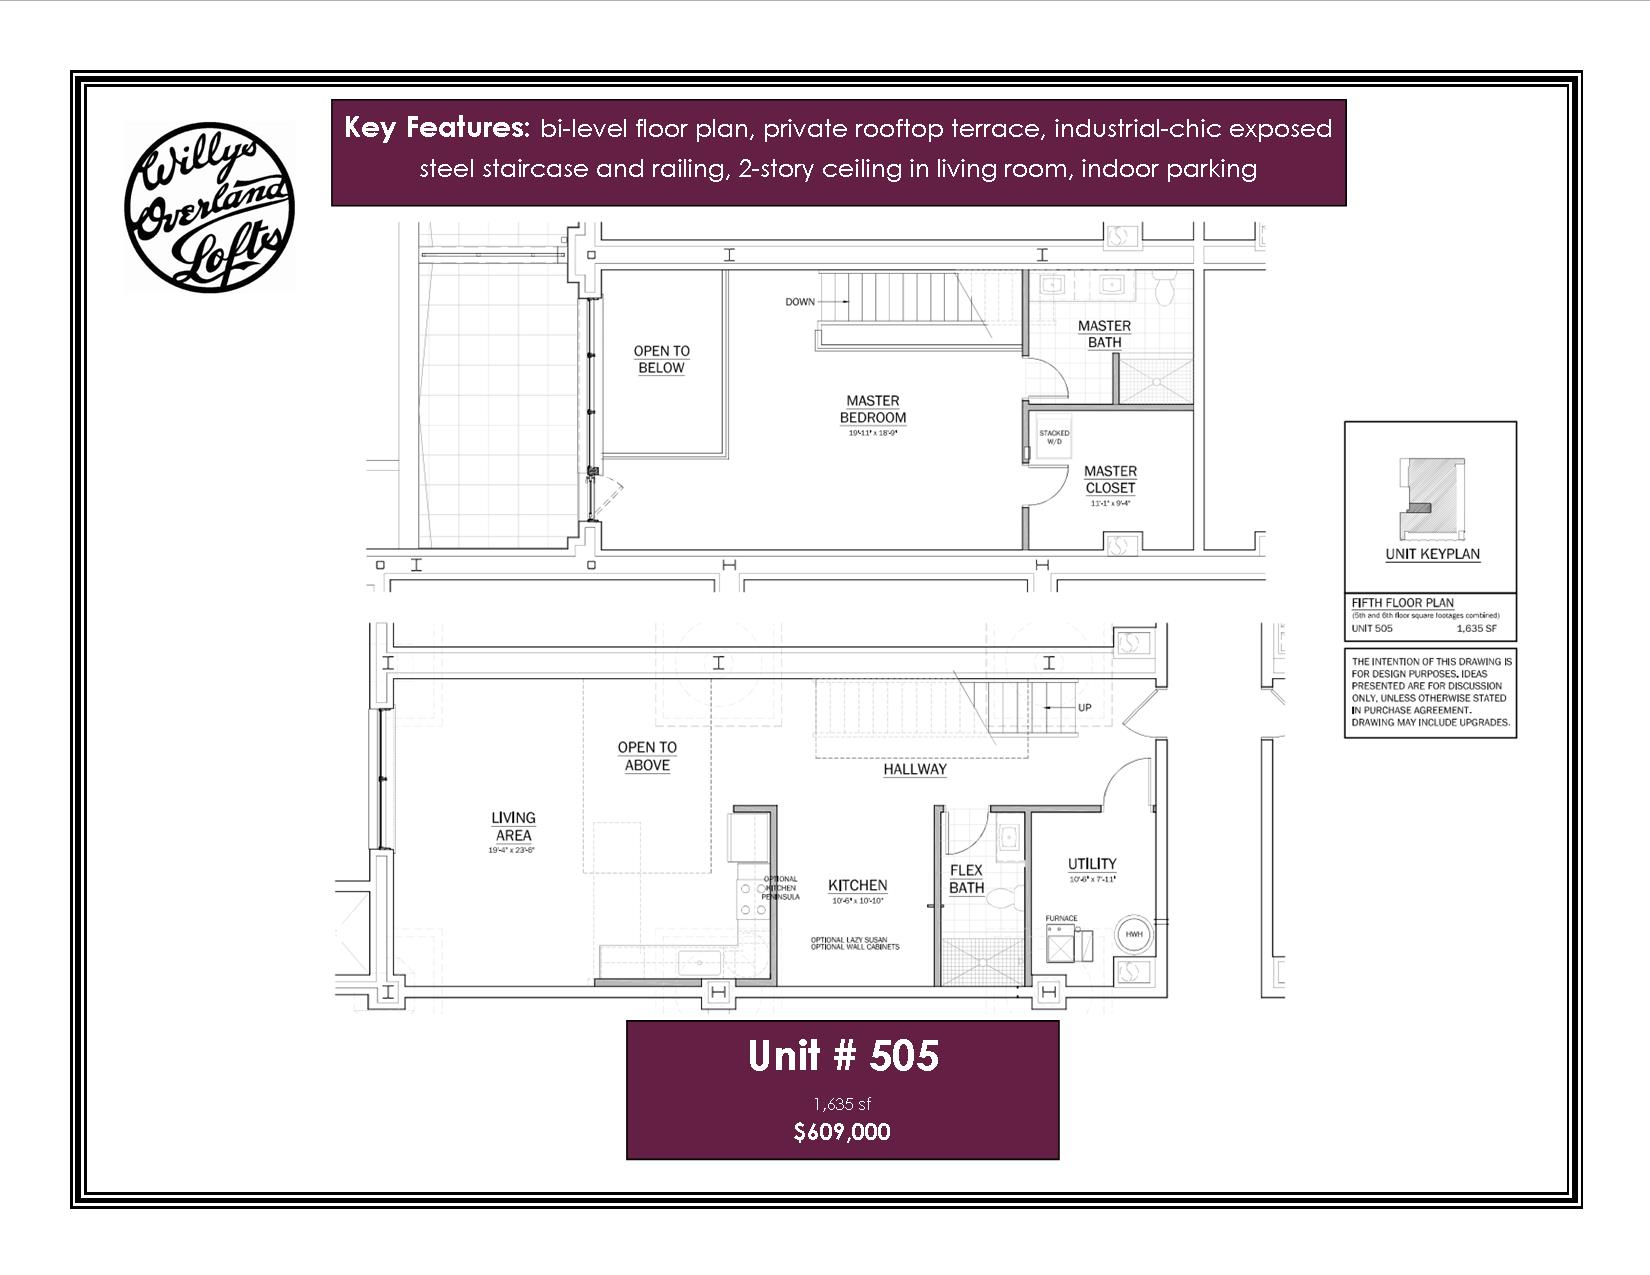 loft 505 willys overland lofts bi level floor plan with contemporary steel staircase and railing large private outdoor terrace with panoramic views of the city